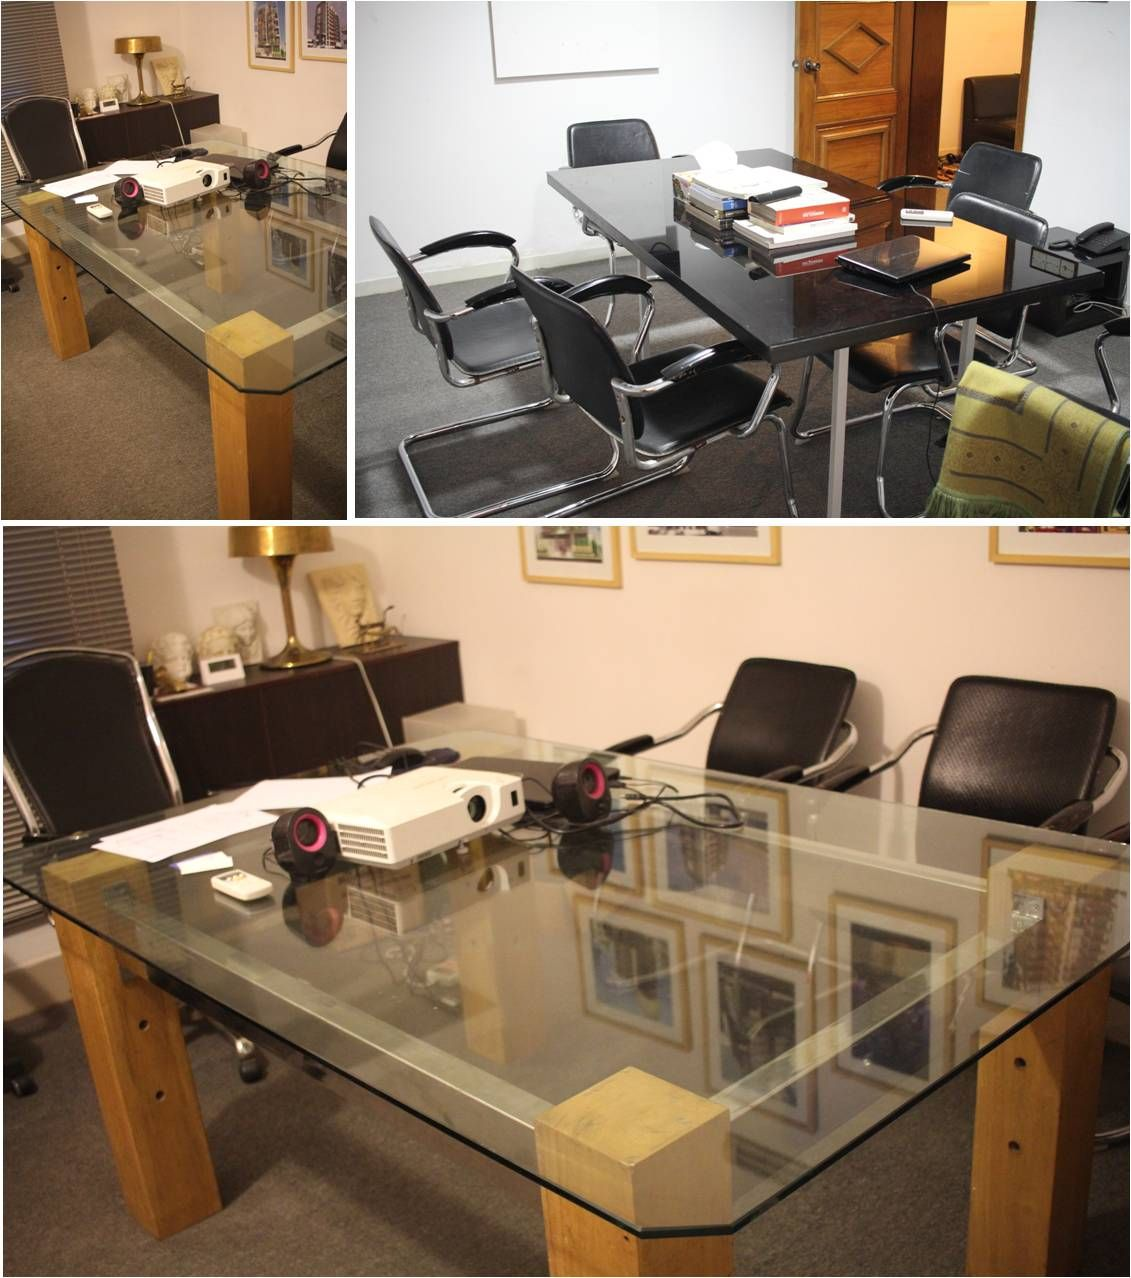 Meeting Table     Manufacturer And Vendor: Hatil And Regal,otobi,designed  Furniture Size:1200 (L)x800(w)x750(h)mm ,1000(l)x700(w)x650(h)mm Material:  ...